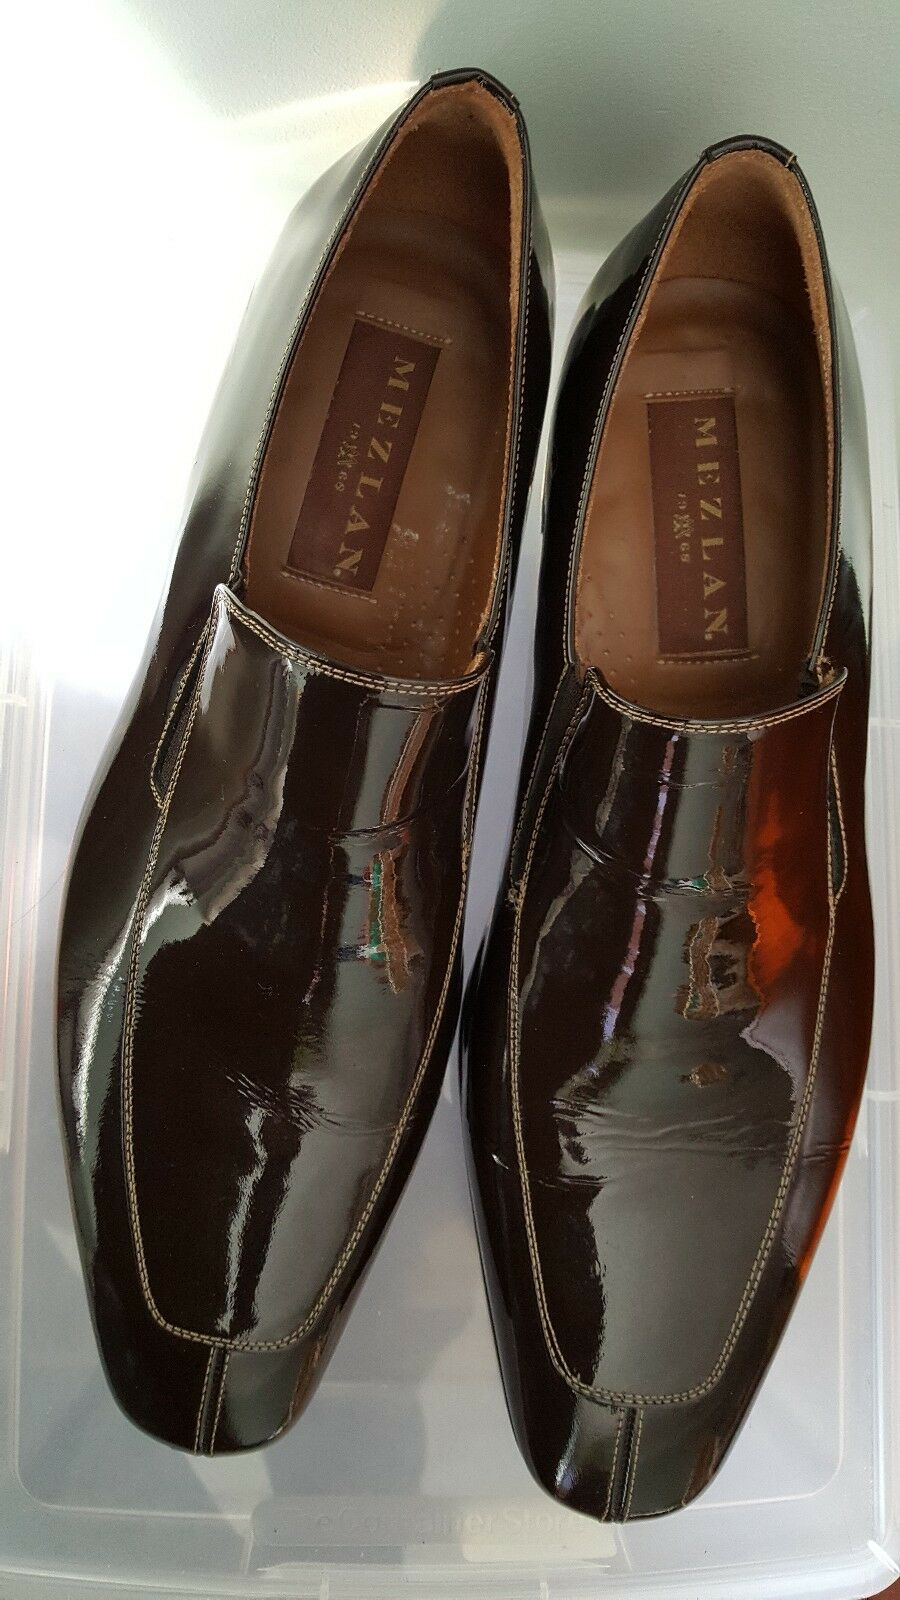 Mezlan 1968 vero cuoio Men's Jacque  shoes Size 10-1 2 made in Spain